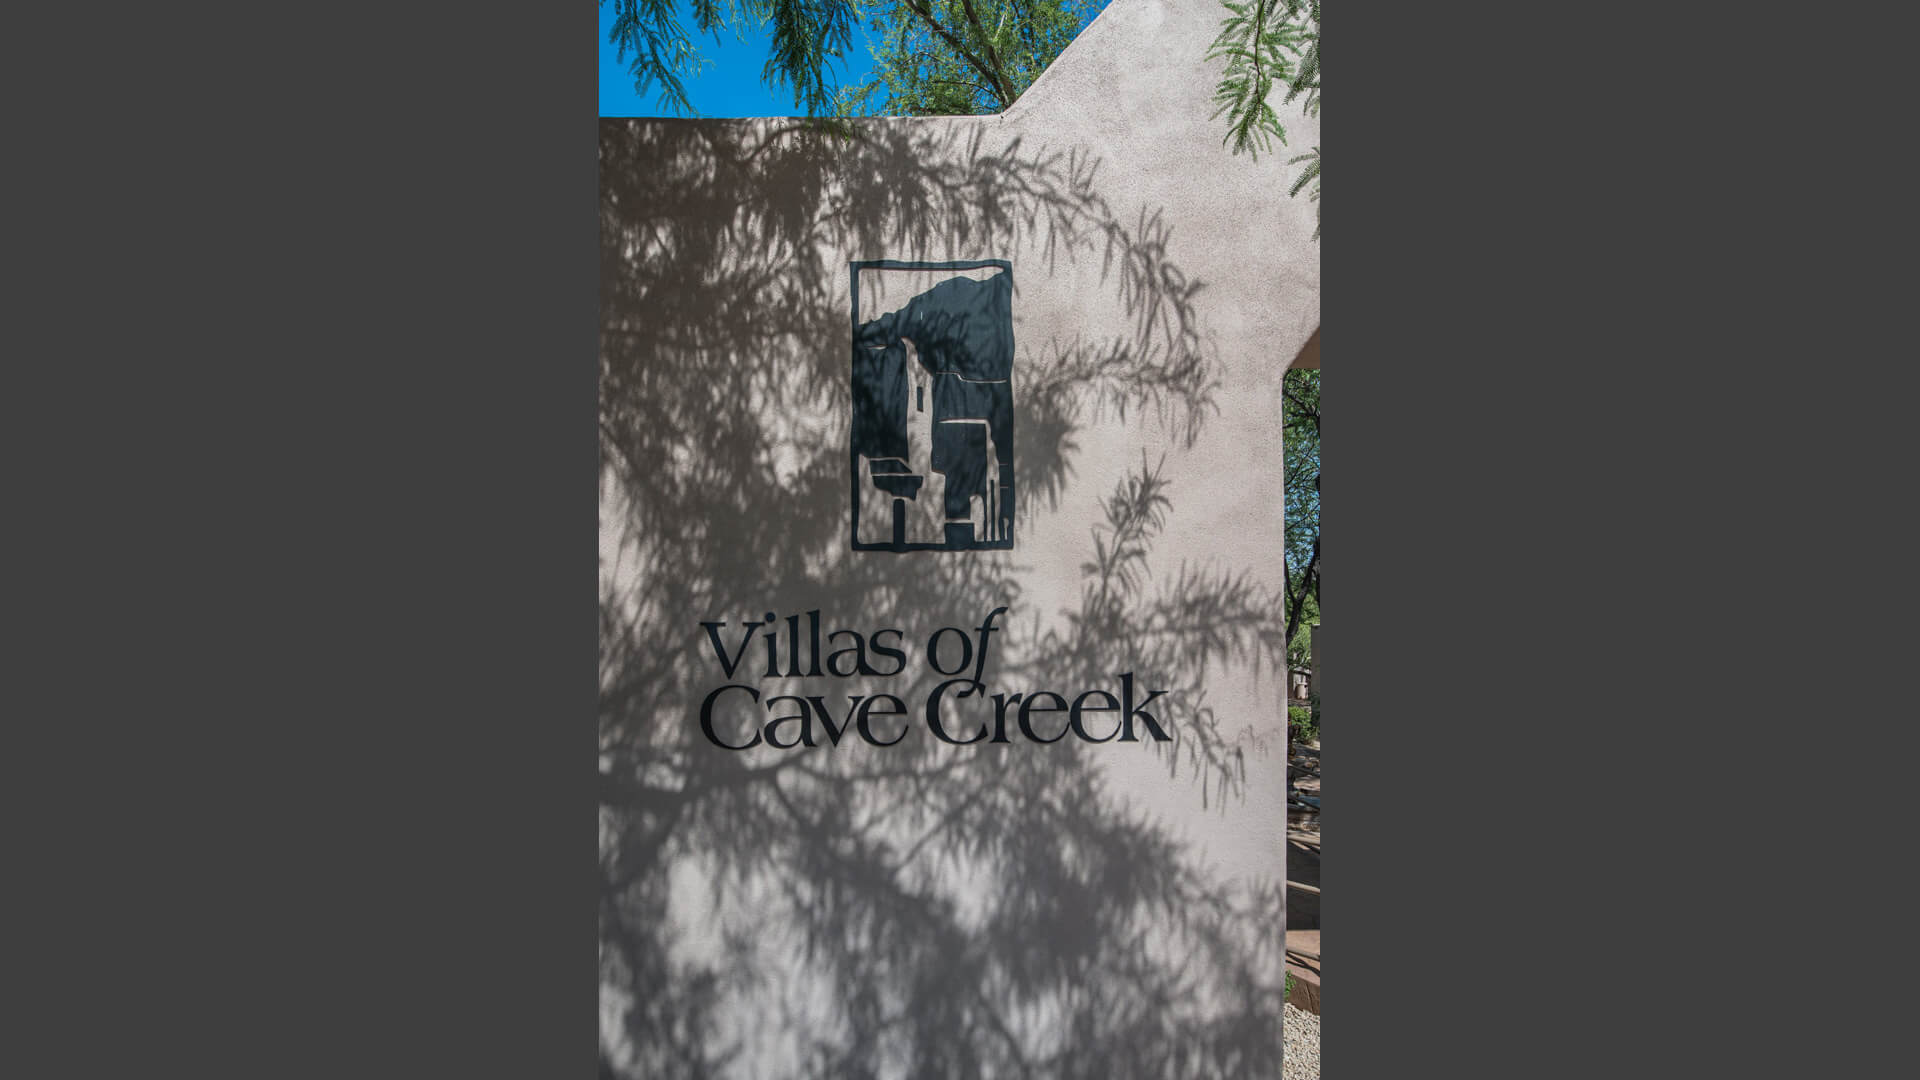 Villas Of Cave Creek Signage